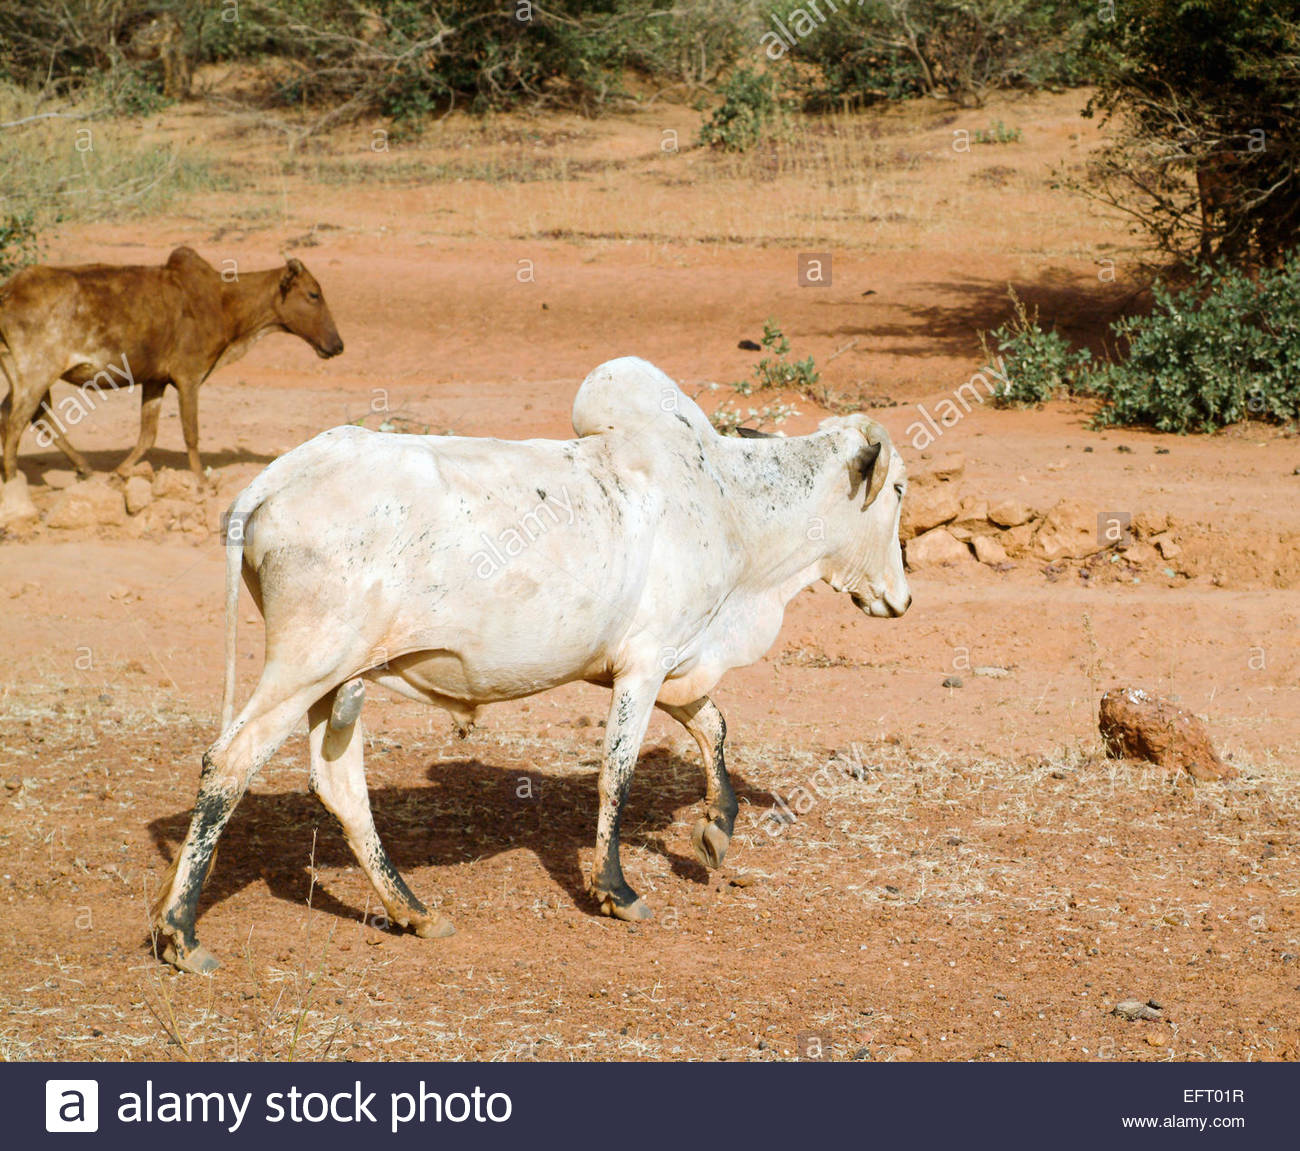 Niger Republic Of Niger NER Western Africa Sahara Desert 2007 Nobody Farming Agriculture Cows Cattle - Stock Image